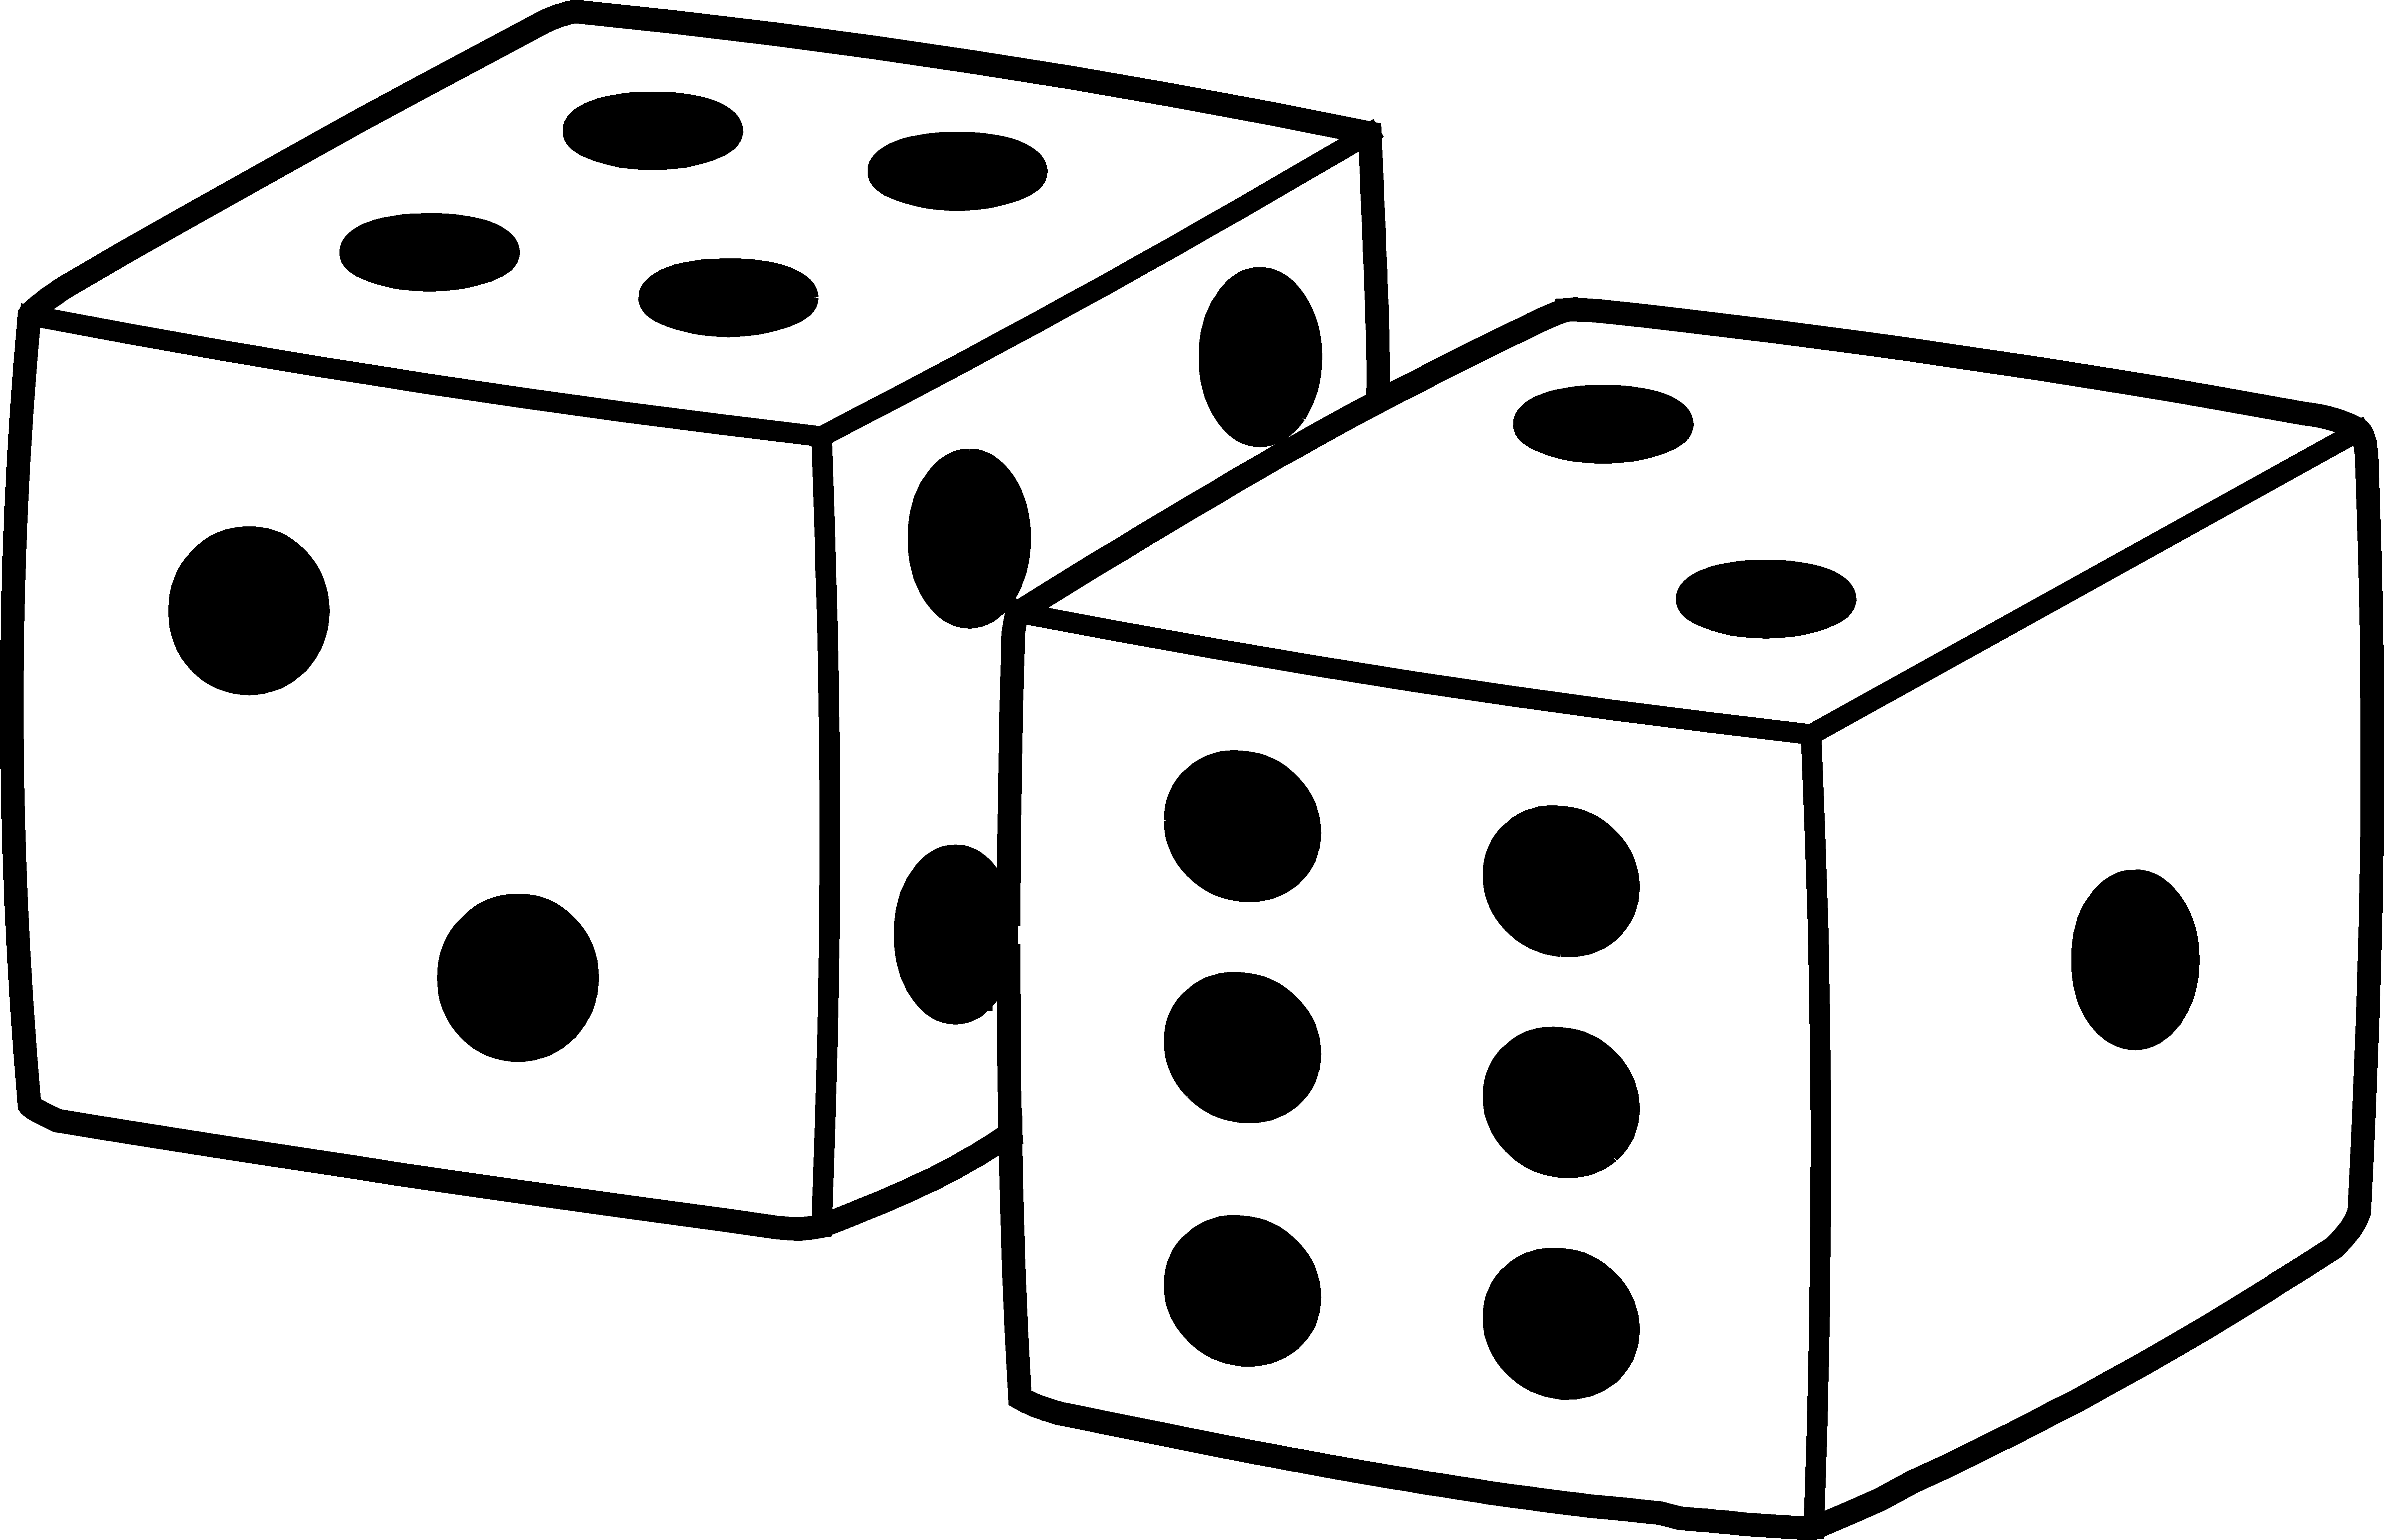 clipart free Dice clipart. Game time battling bones